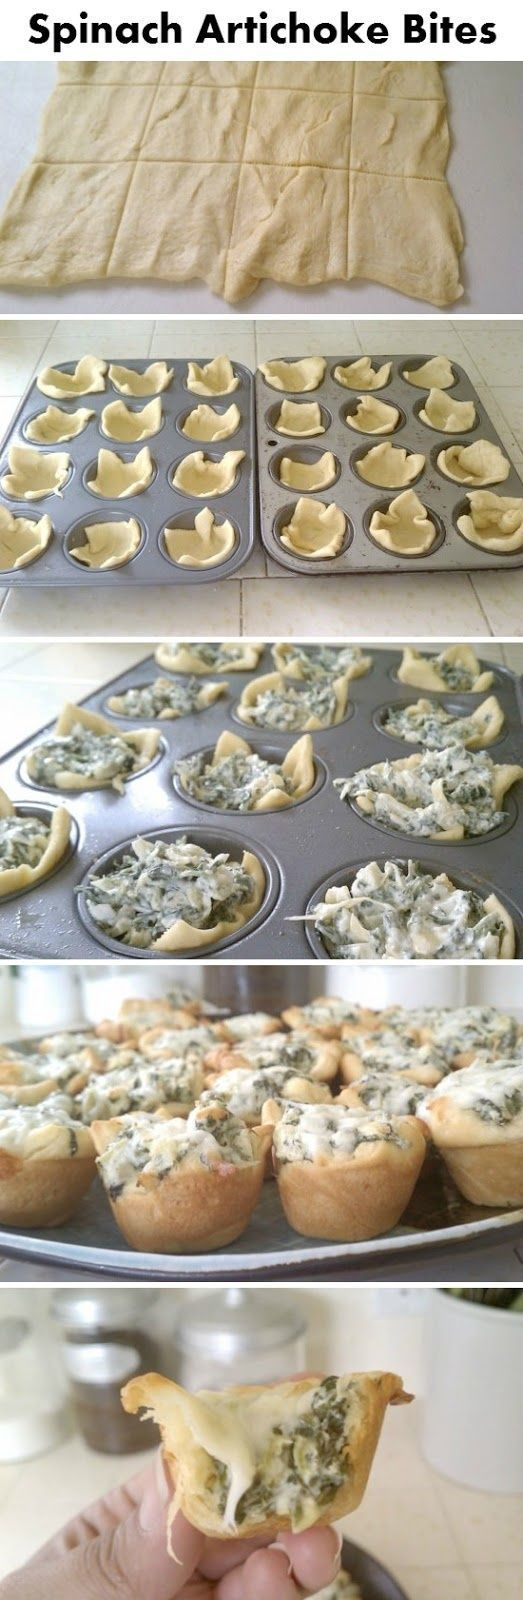 Spinach Artichoke Bites - made with crescent roll dough.